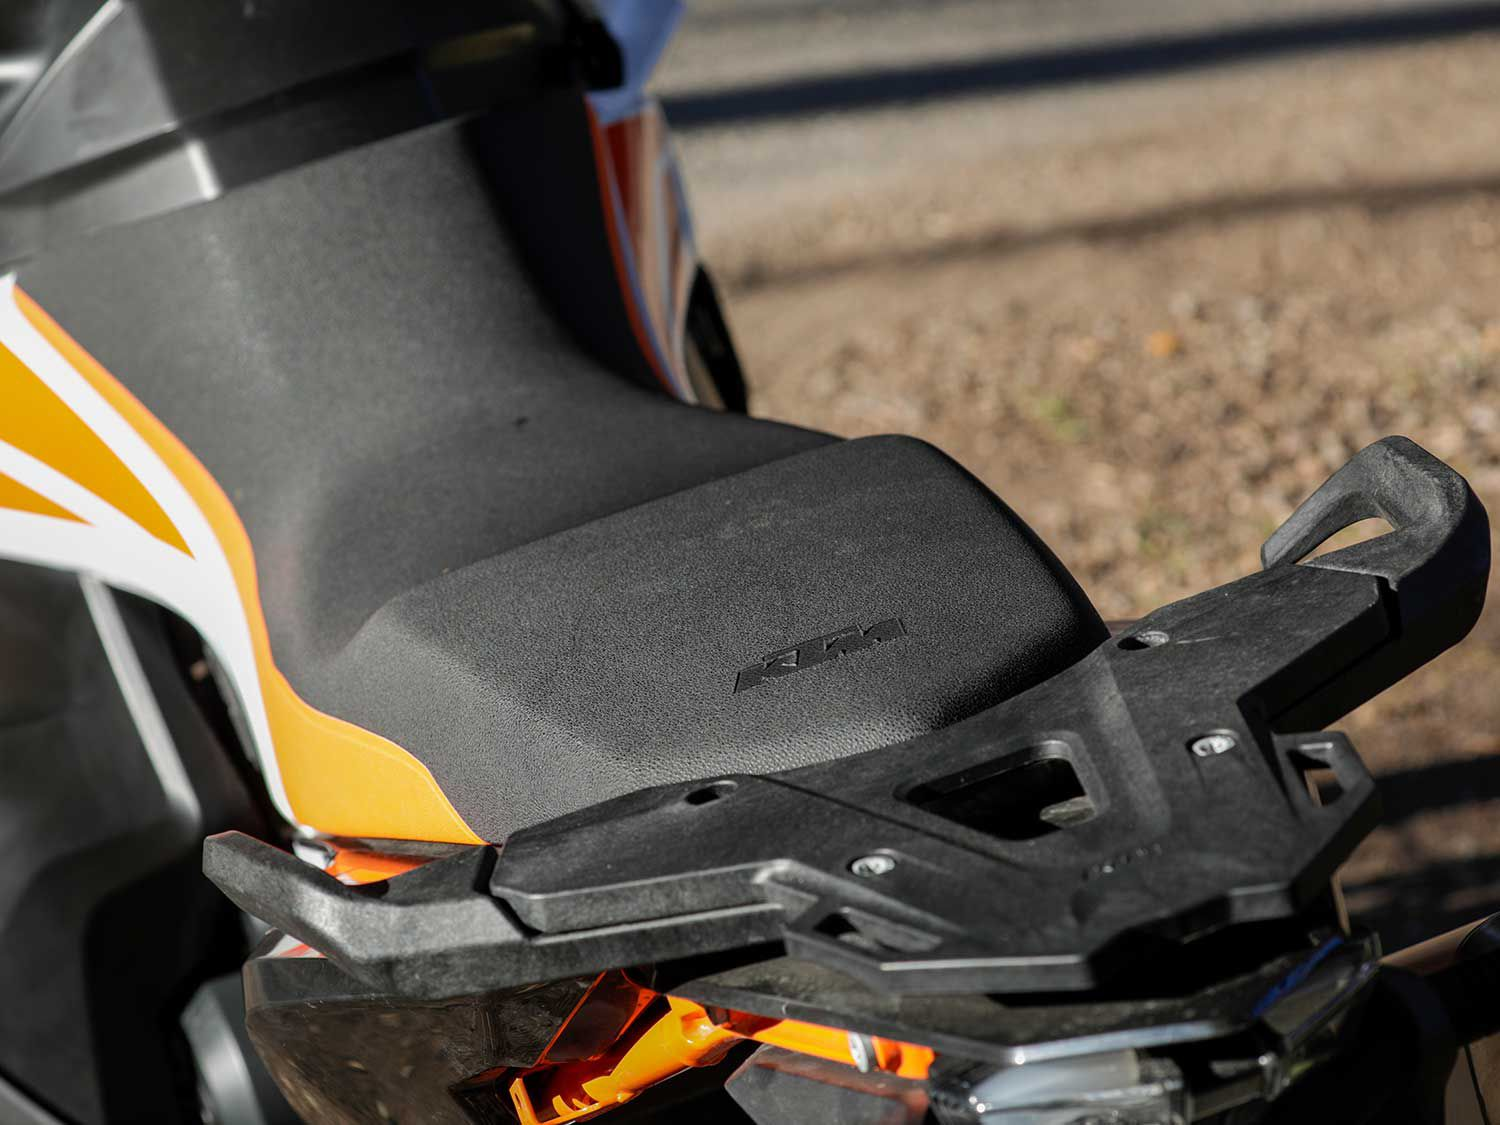 The R-spec model trades a height-adjustable two-piece saddle for this fixed seat. It is designed to be easier to maneuver across when riding across treacherous terrain.